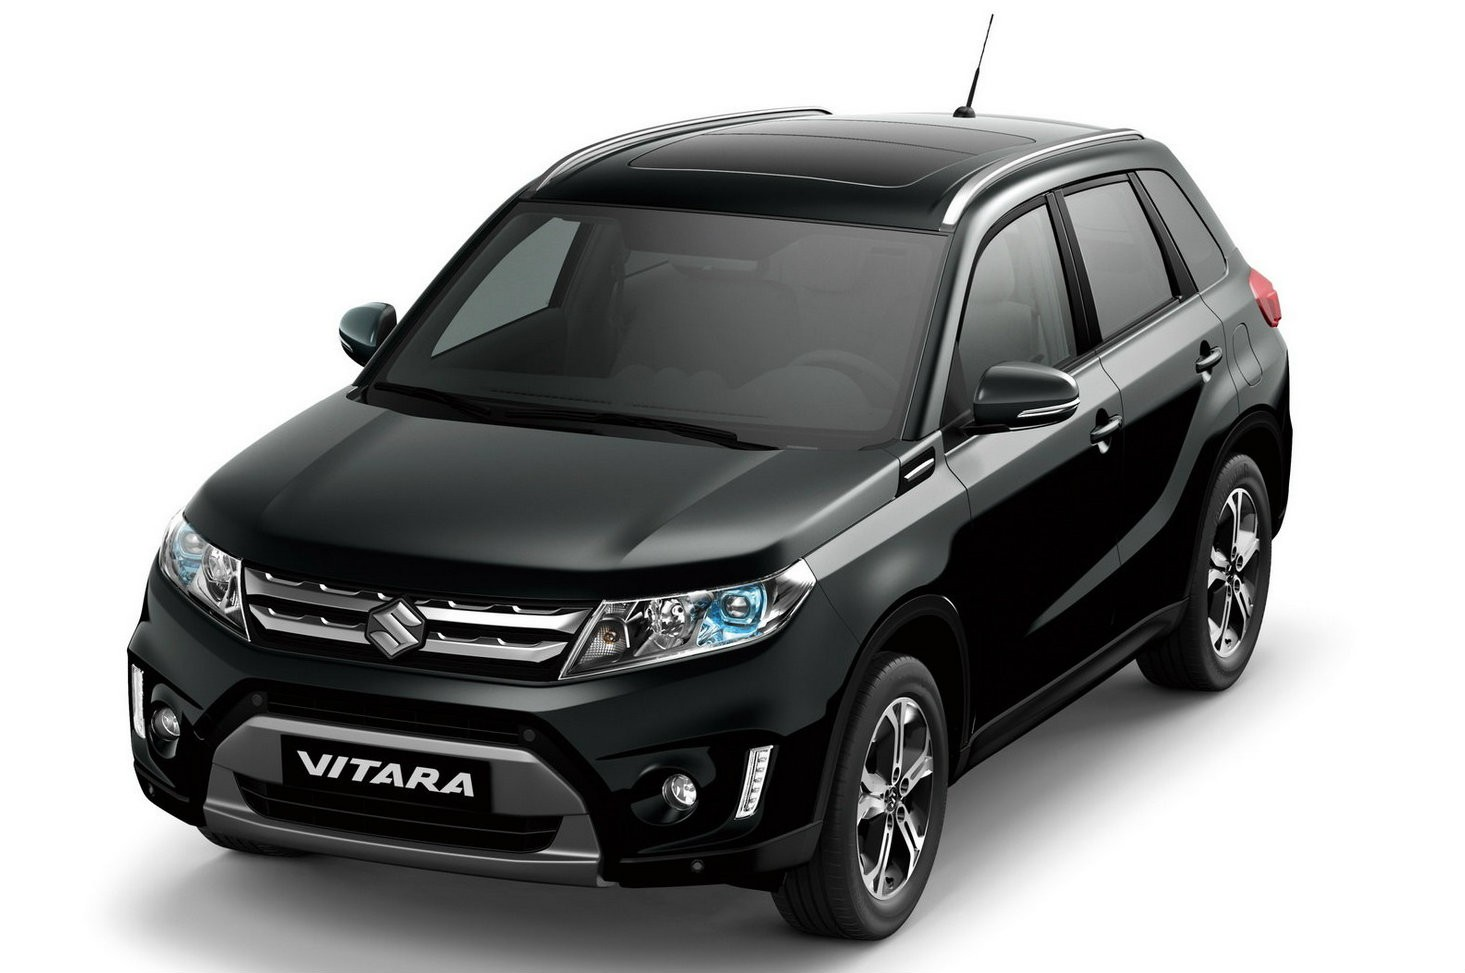 lastcarnews 2015 suzuki vitara web black edition arriving in europe next year in march. Black Bedroom Furniture Sets. Home Design Ideas